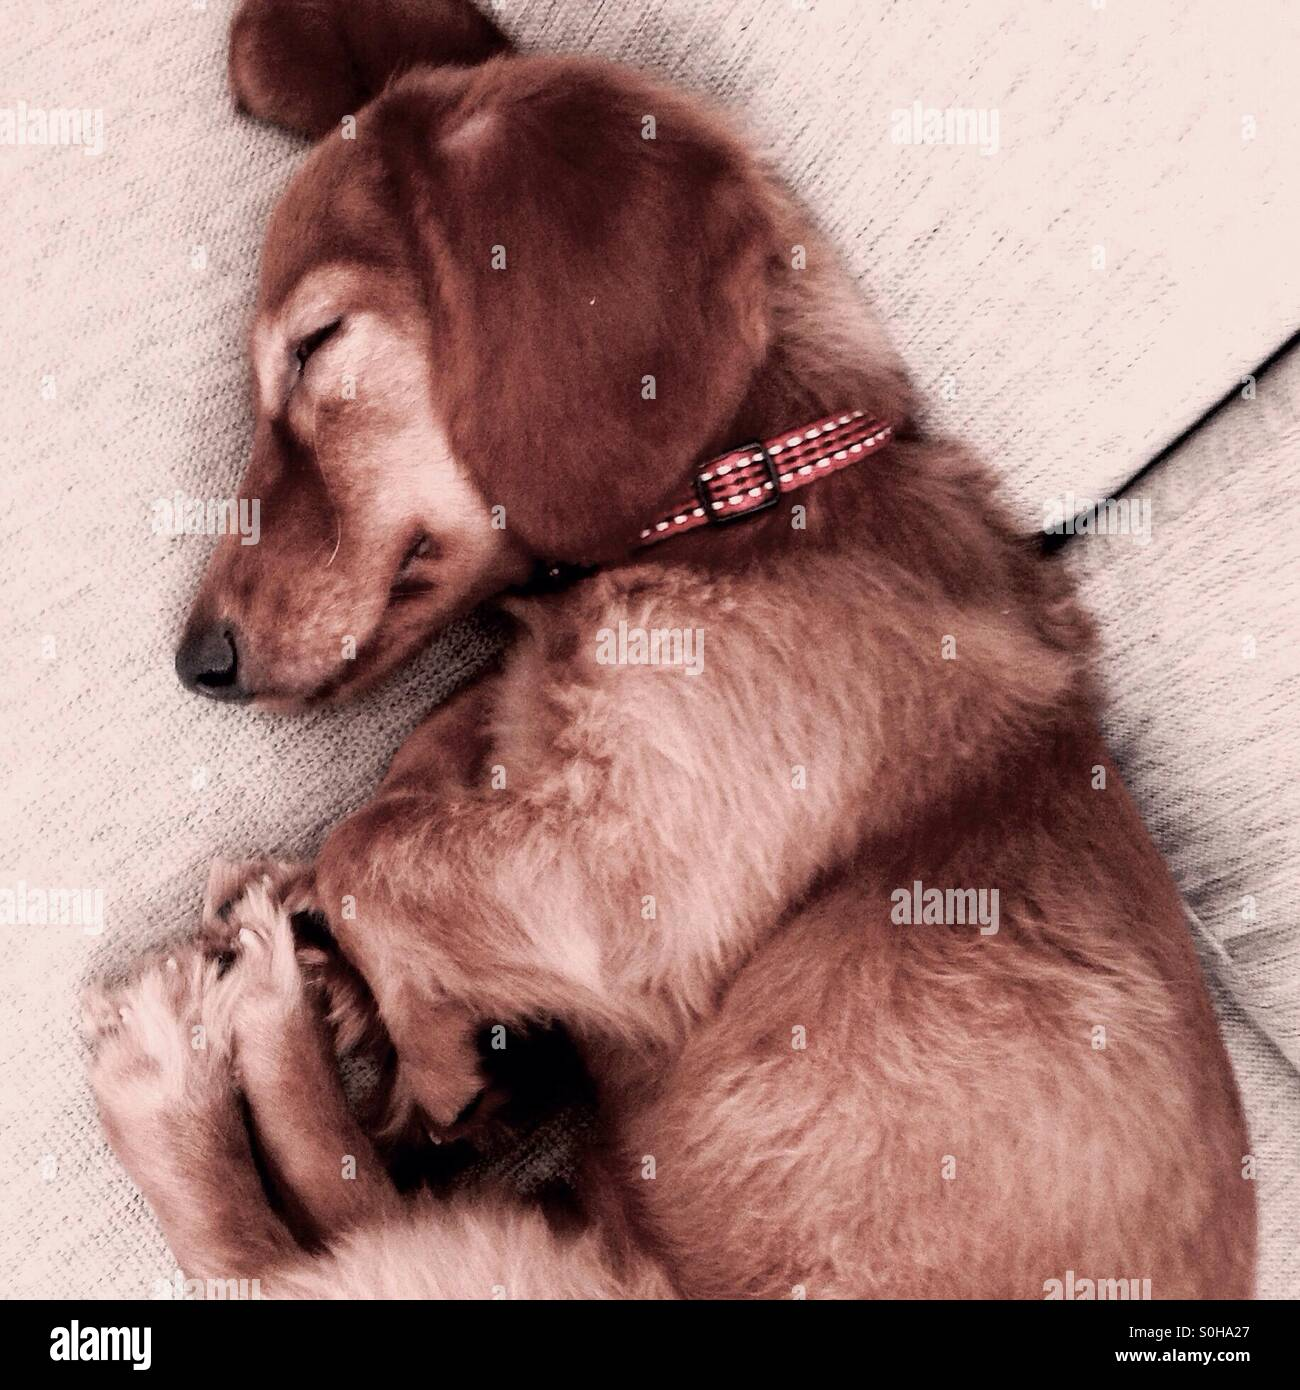 Mogi chiweenie in fetal position - Stock Image